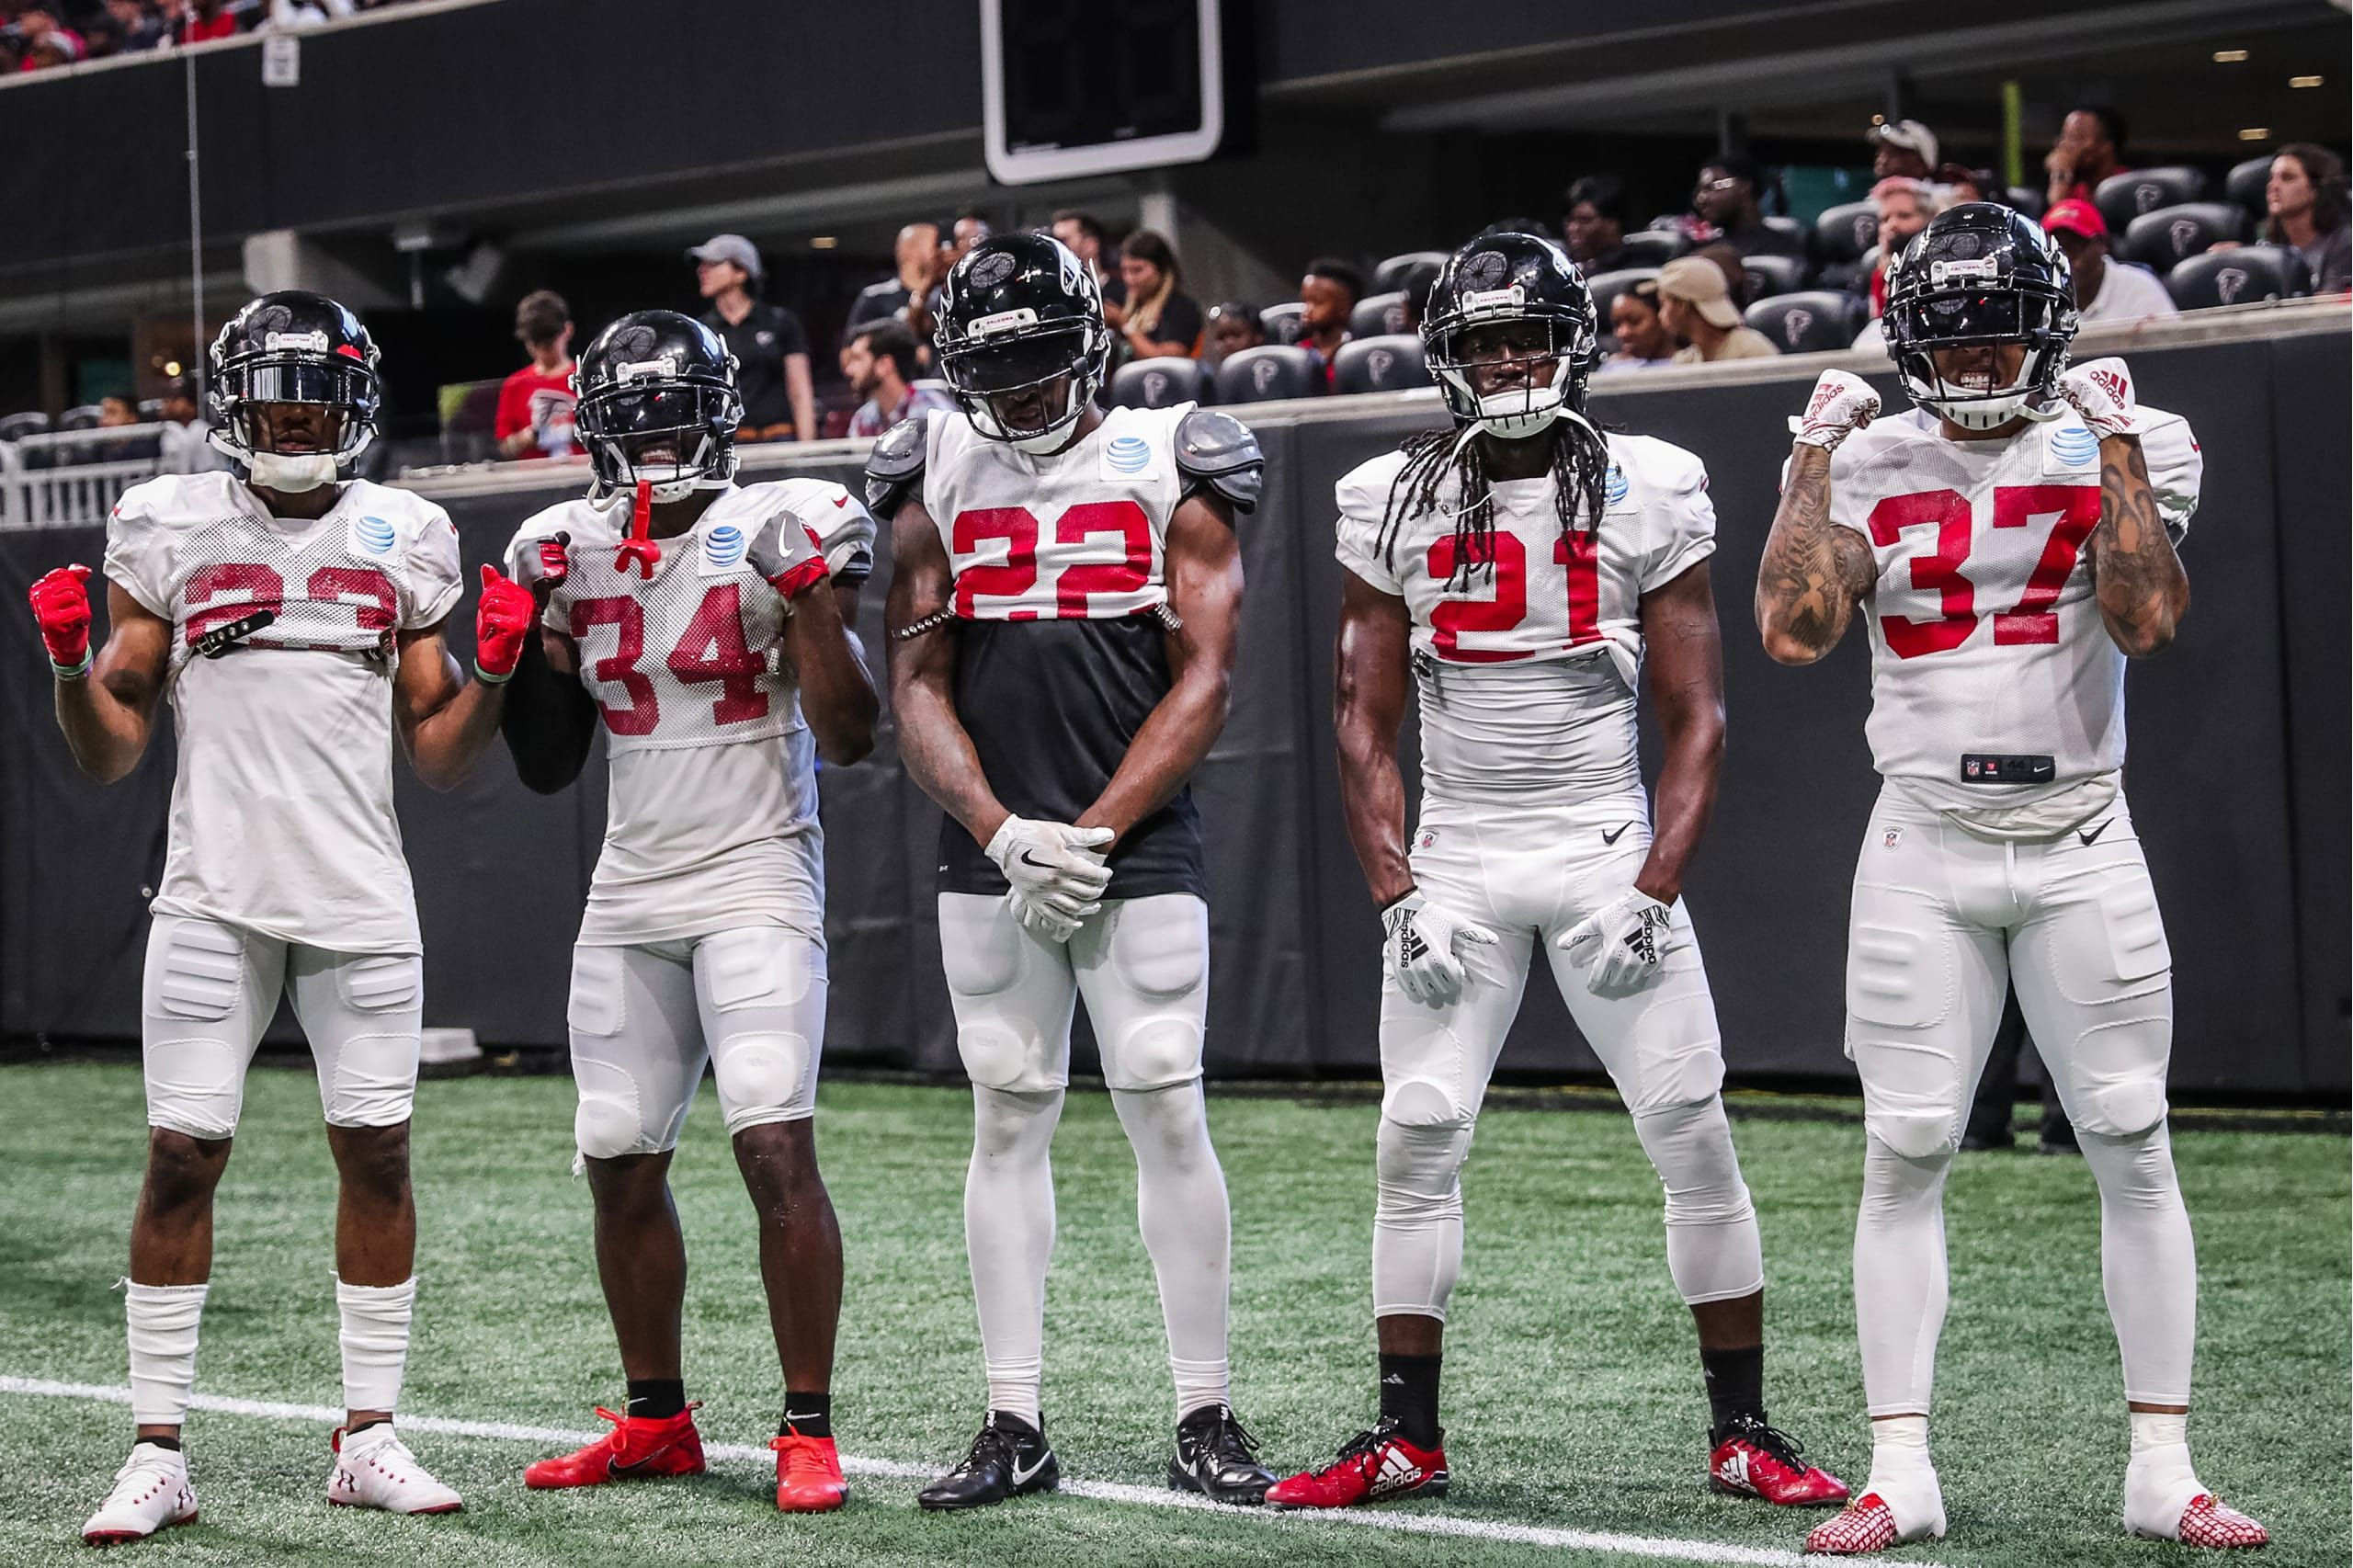 Pin By Steven Garmon On Falcons Training Camp Squad Goals Photo